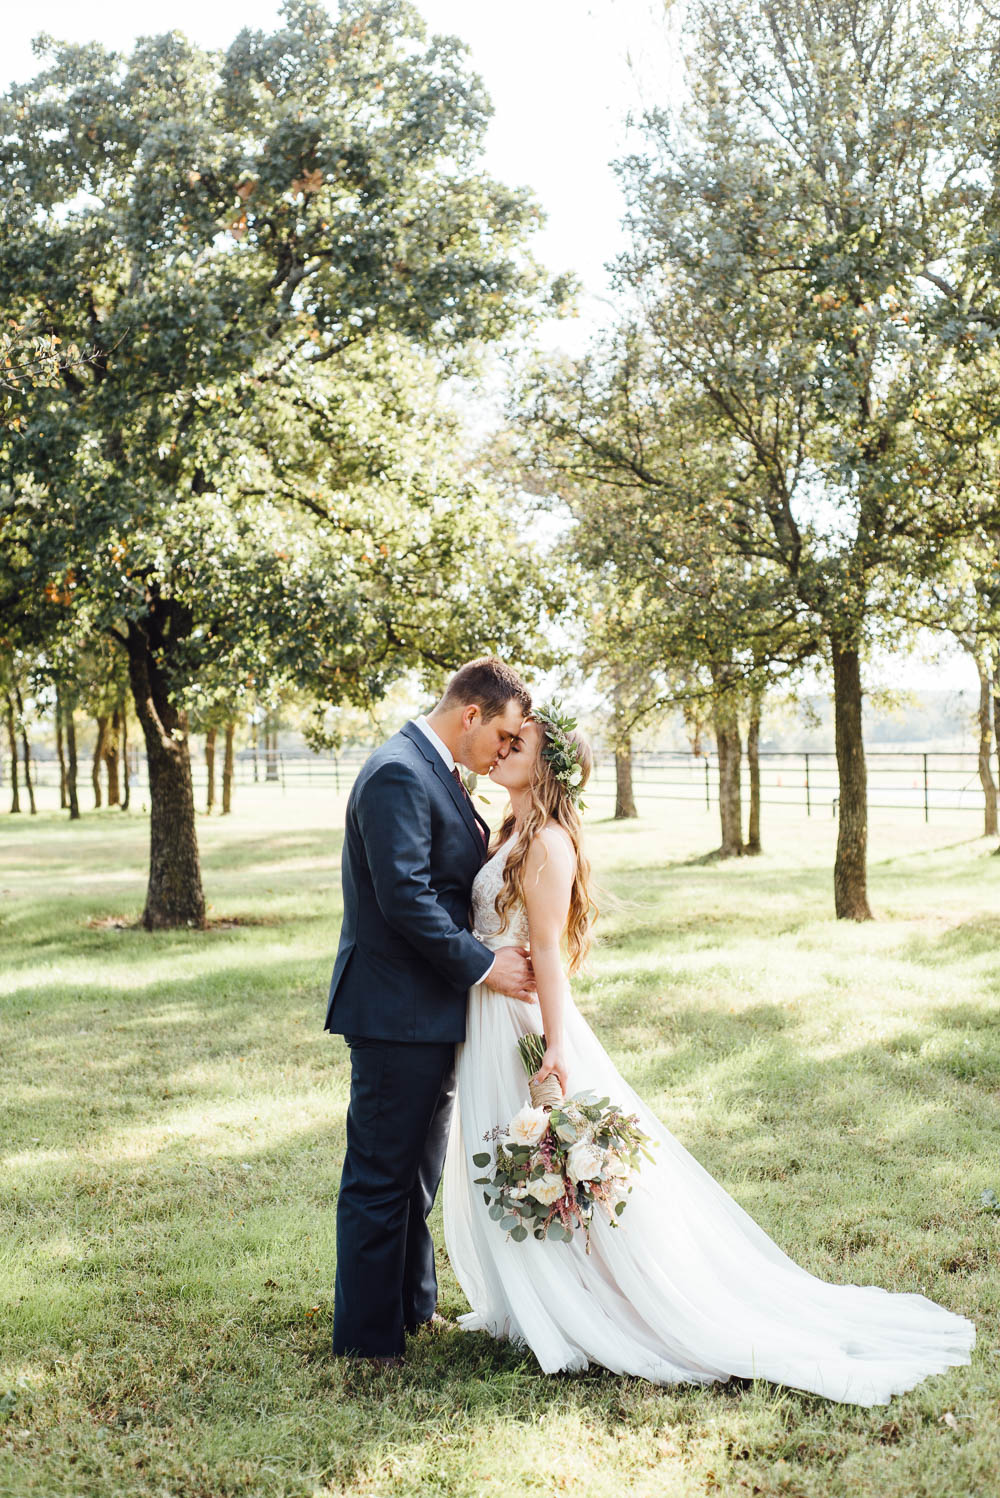 boho wedding photographer, ft worth wedding photography, fort worth wedding photographers, bohemian wedding photography, green fall wedding in north texas, fort worth wedding photography blog, north texas wedding photographer, ranch wedding photographer